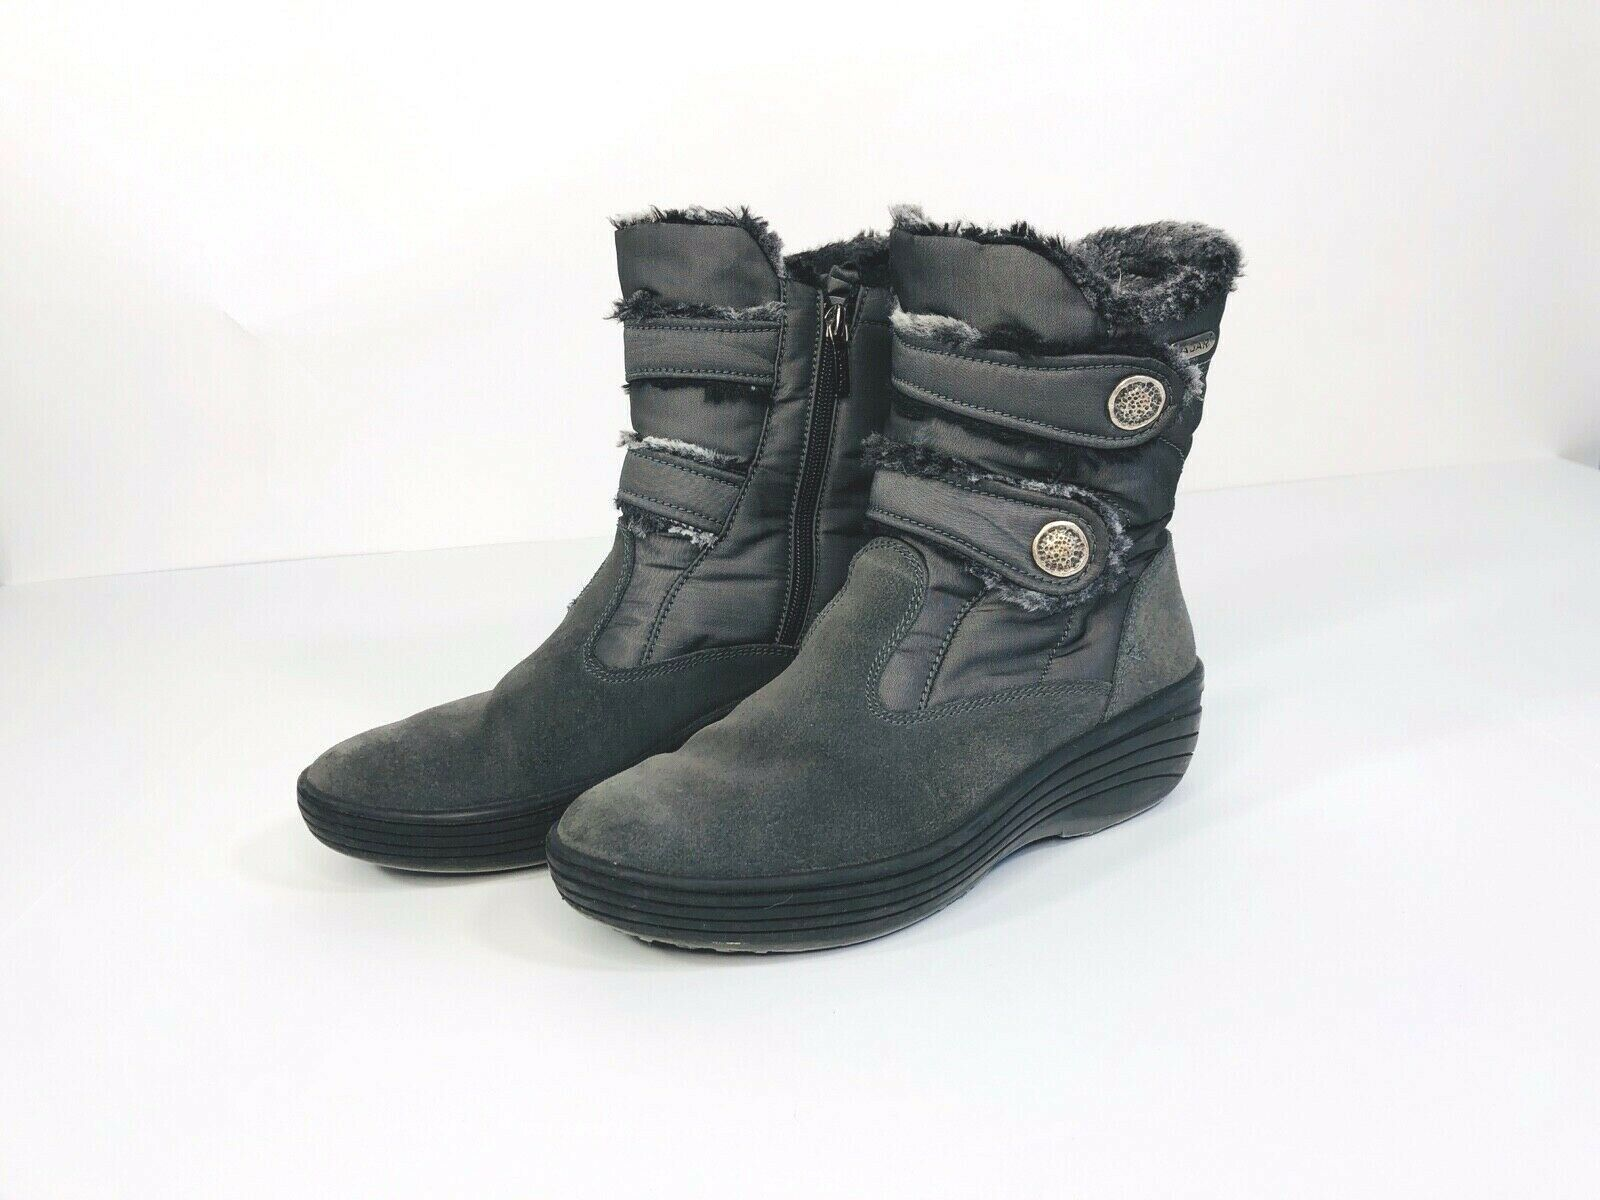 Pajar womens grey with silver button winter boots size 40